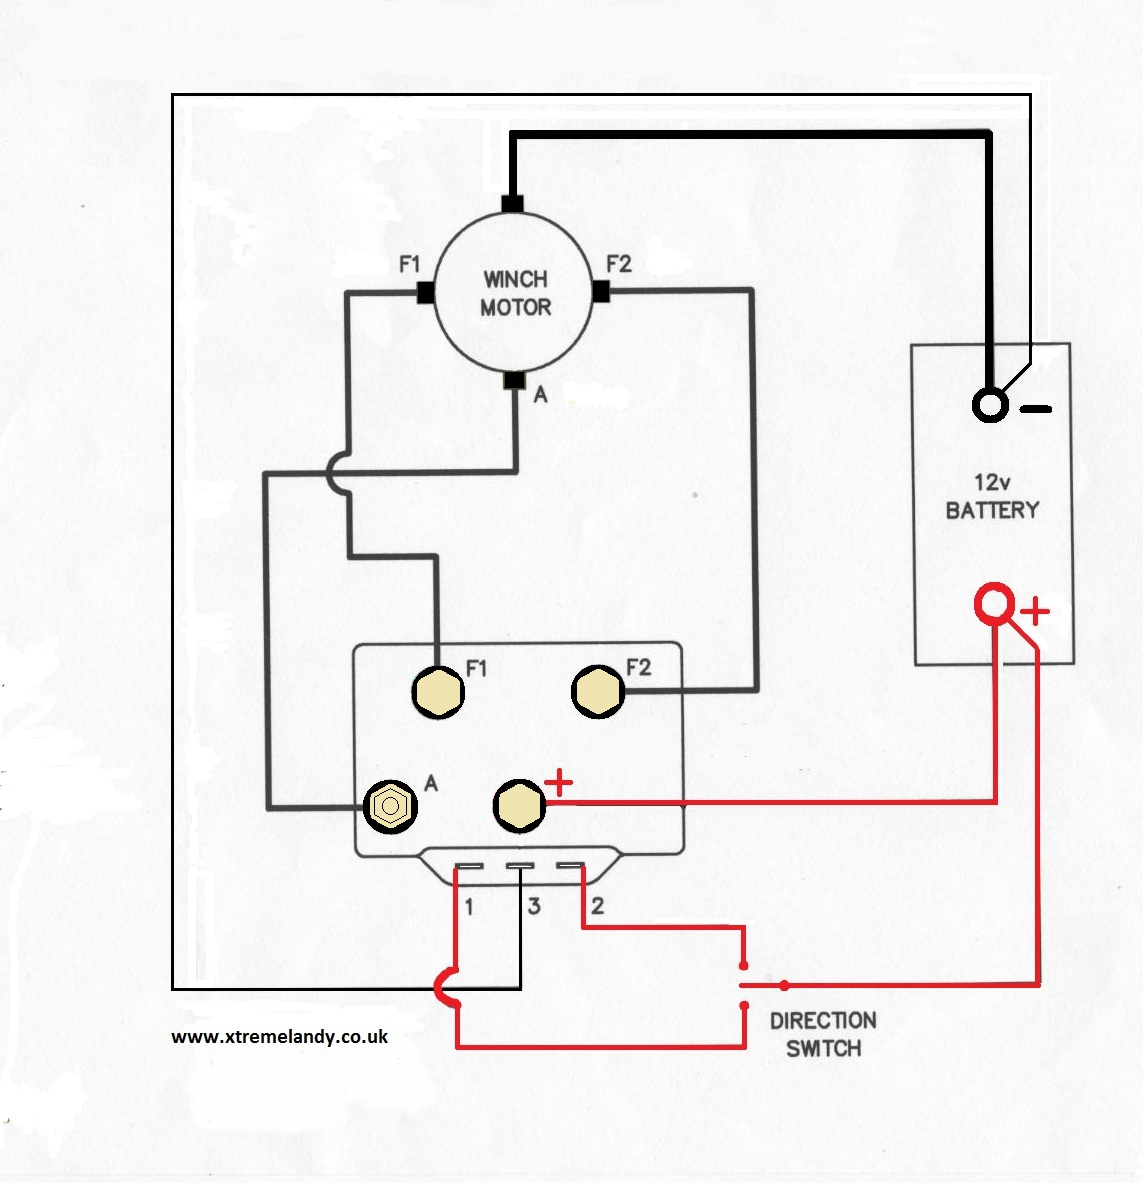 albright wiring diagram image downloadable manuals land rover discovery 1 wiring diagram pdf at gsmx.co